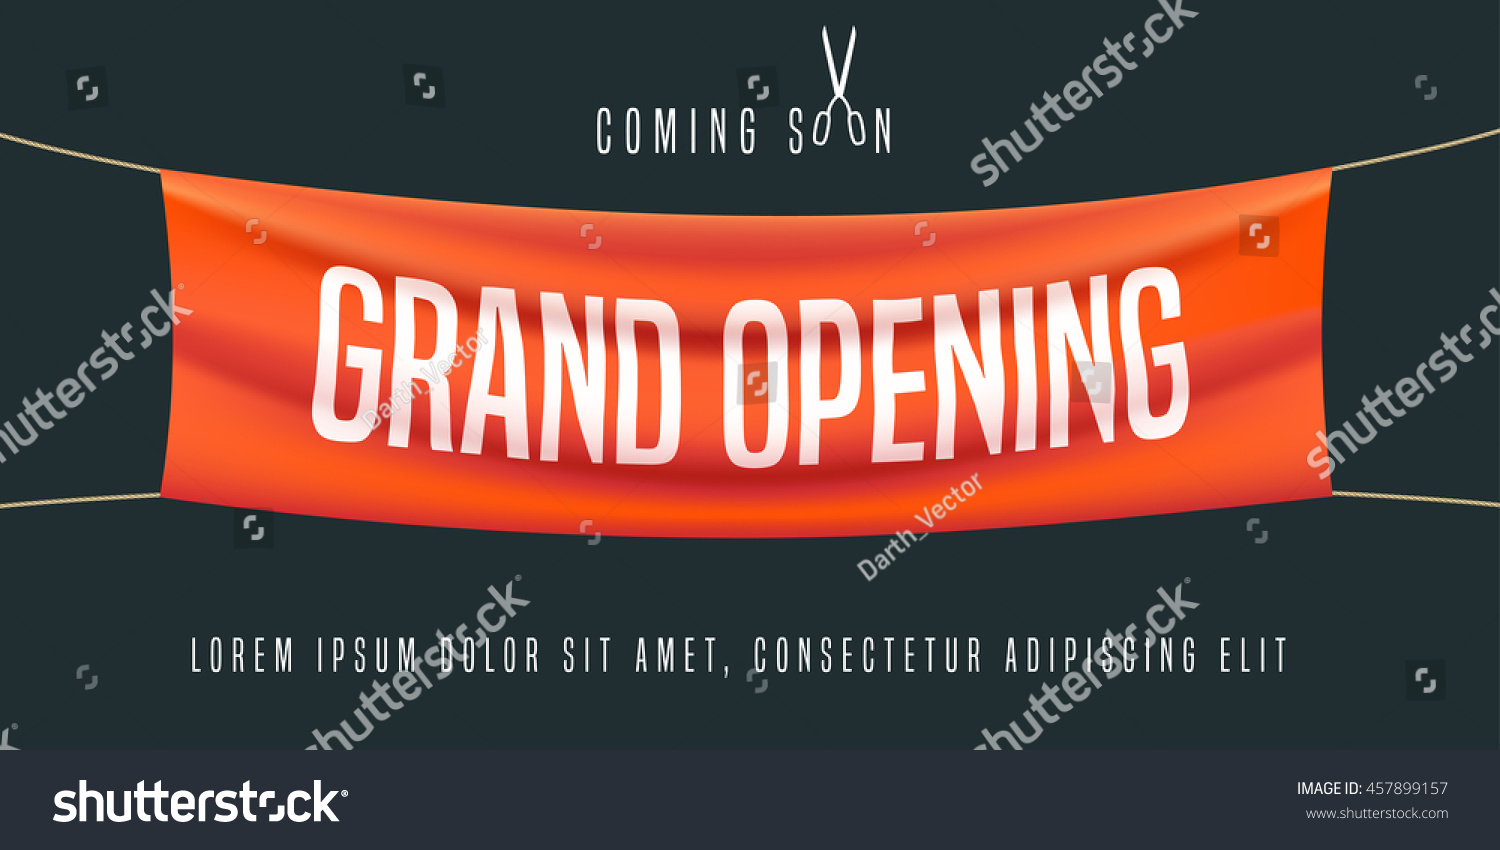 Grand Opening Vector Illustration Background New Vector – Grand Opening Flyer Template